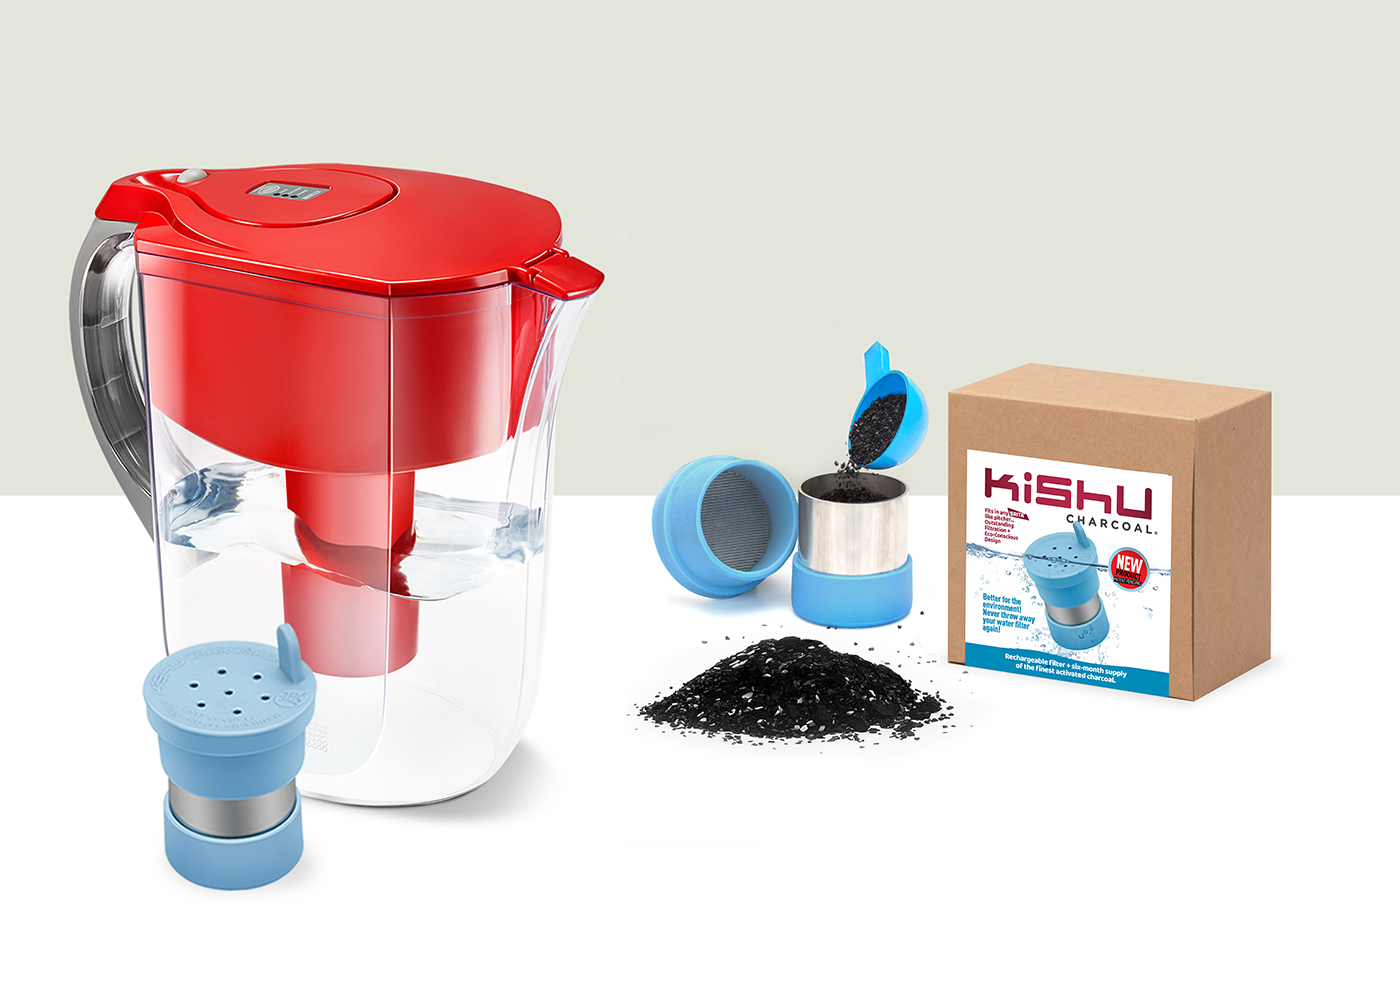 Kishu Charcoal Water Filter